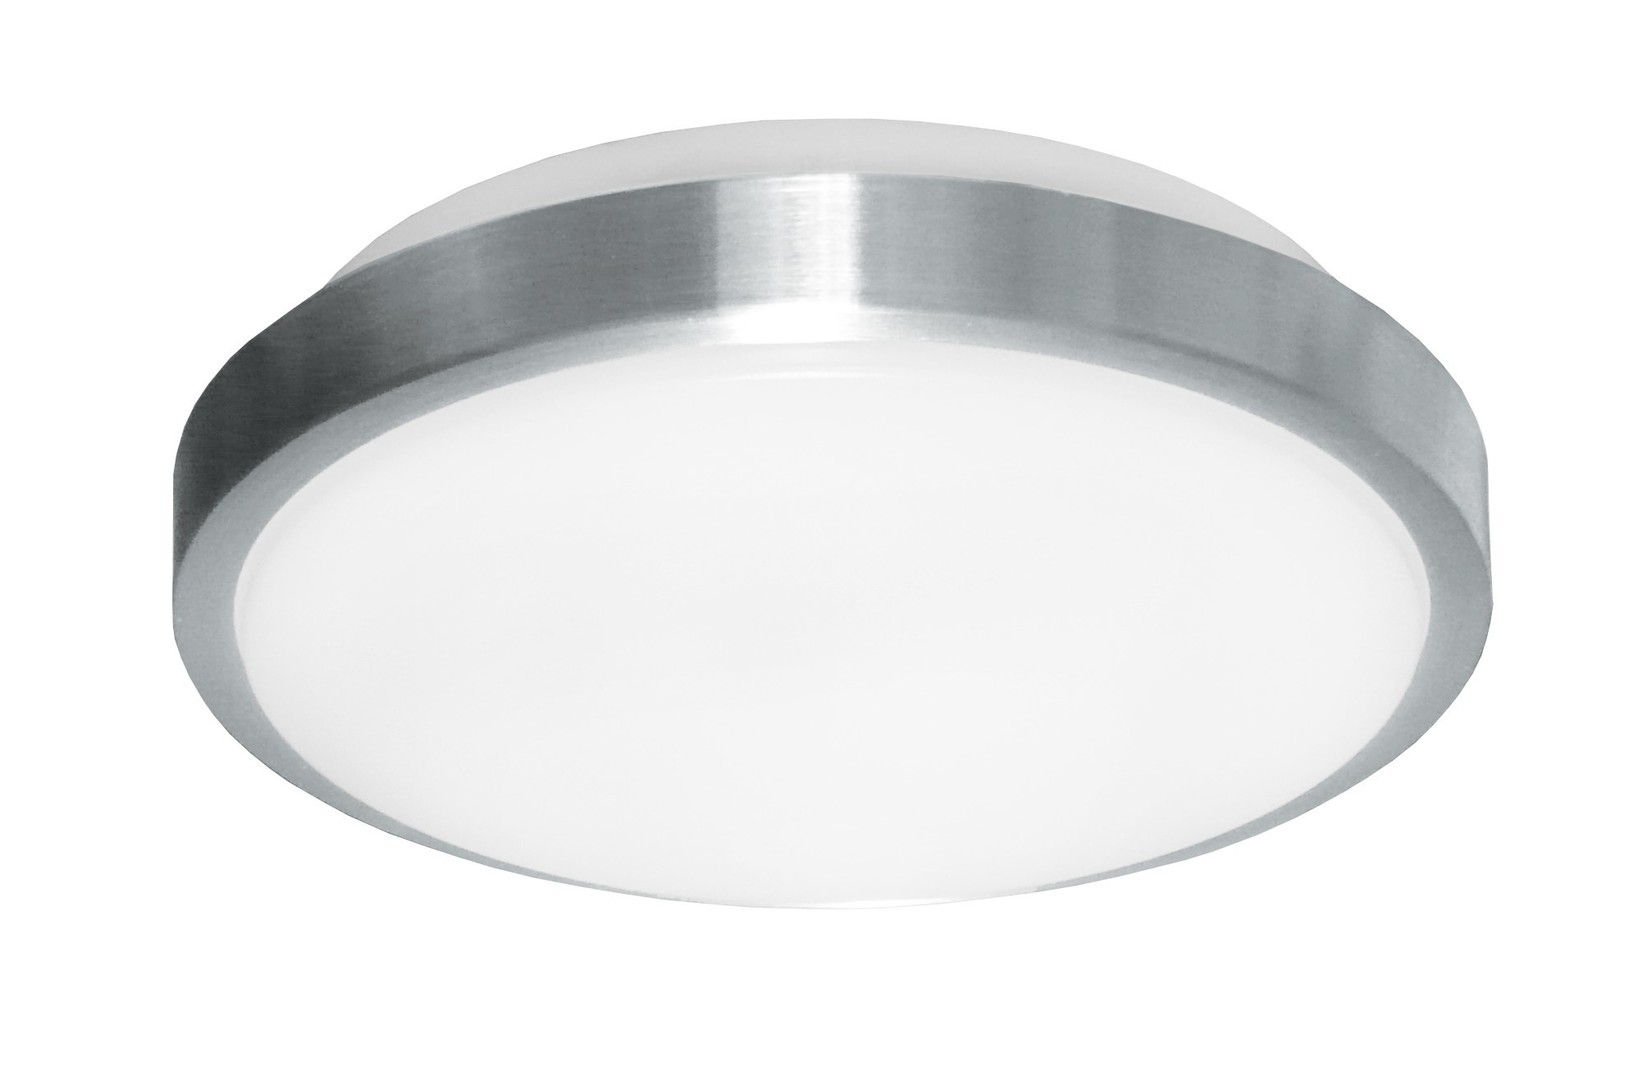 Plafond LED 12W 2700K diameter 260mm